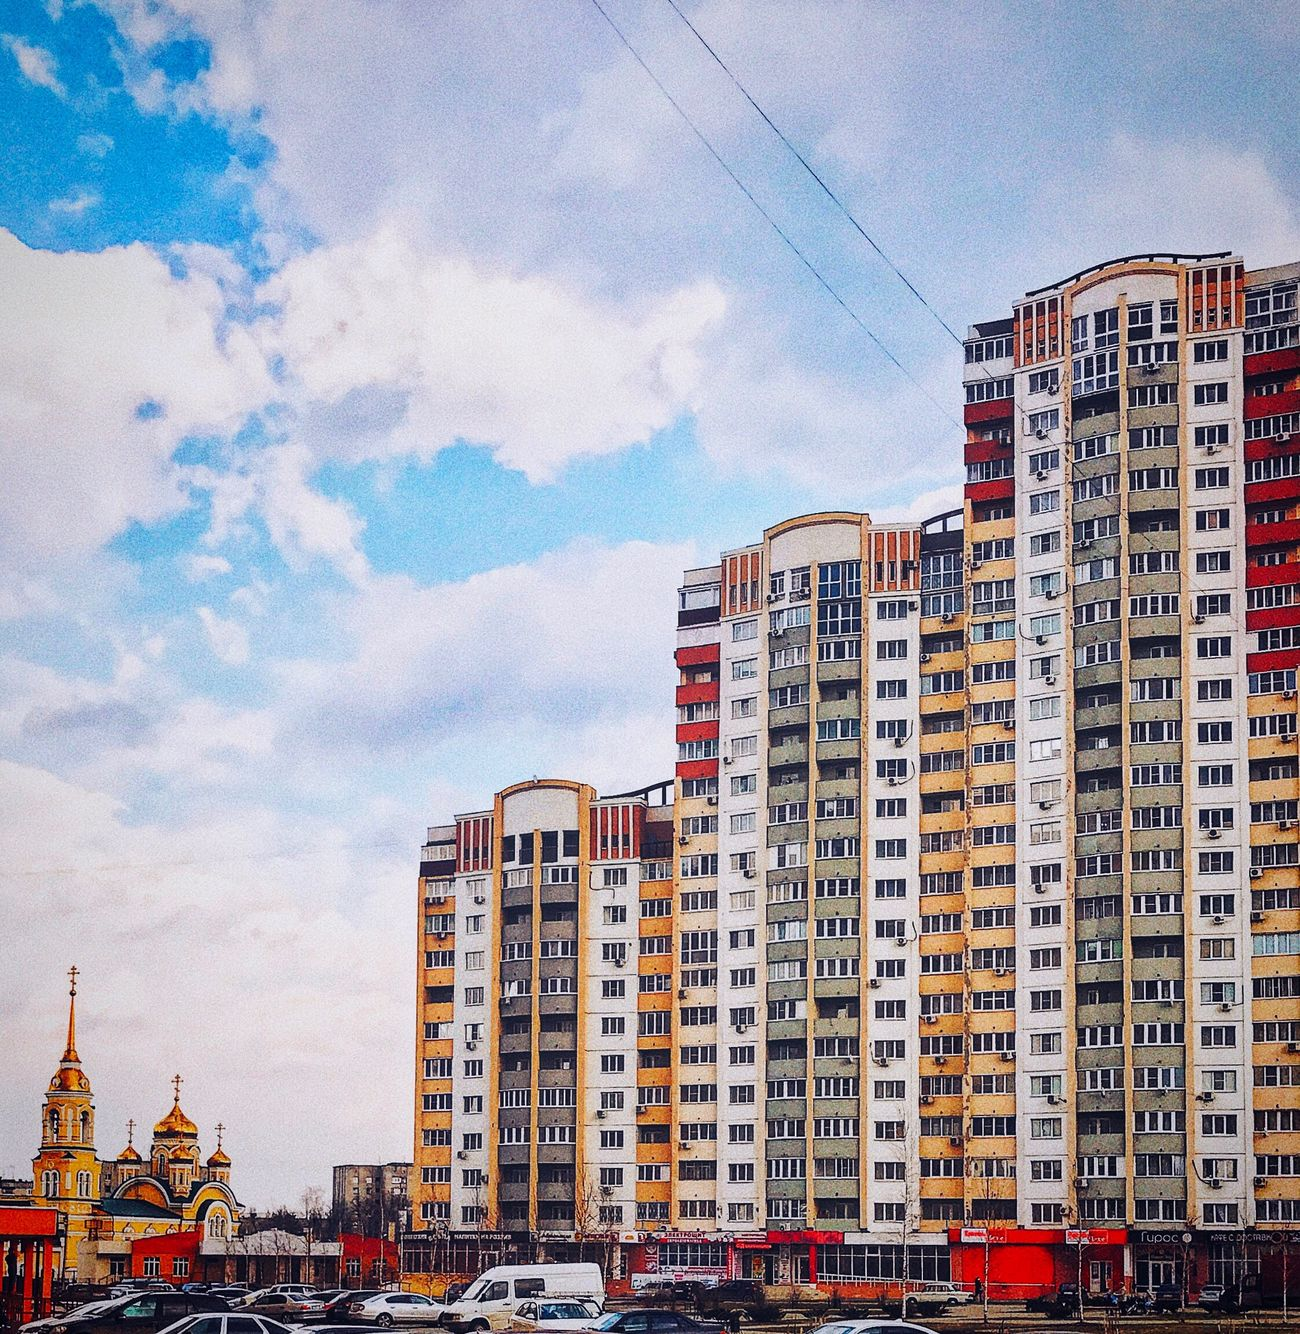 Building Exterior Architecture Built Structure City Sky Outdoors Residential Building Cloud - Sky Apartment No People City Life Day Skyscraper Cityscape Building Story Lipetsk липецк